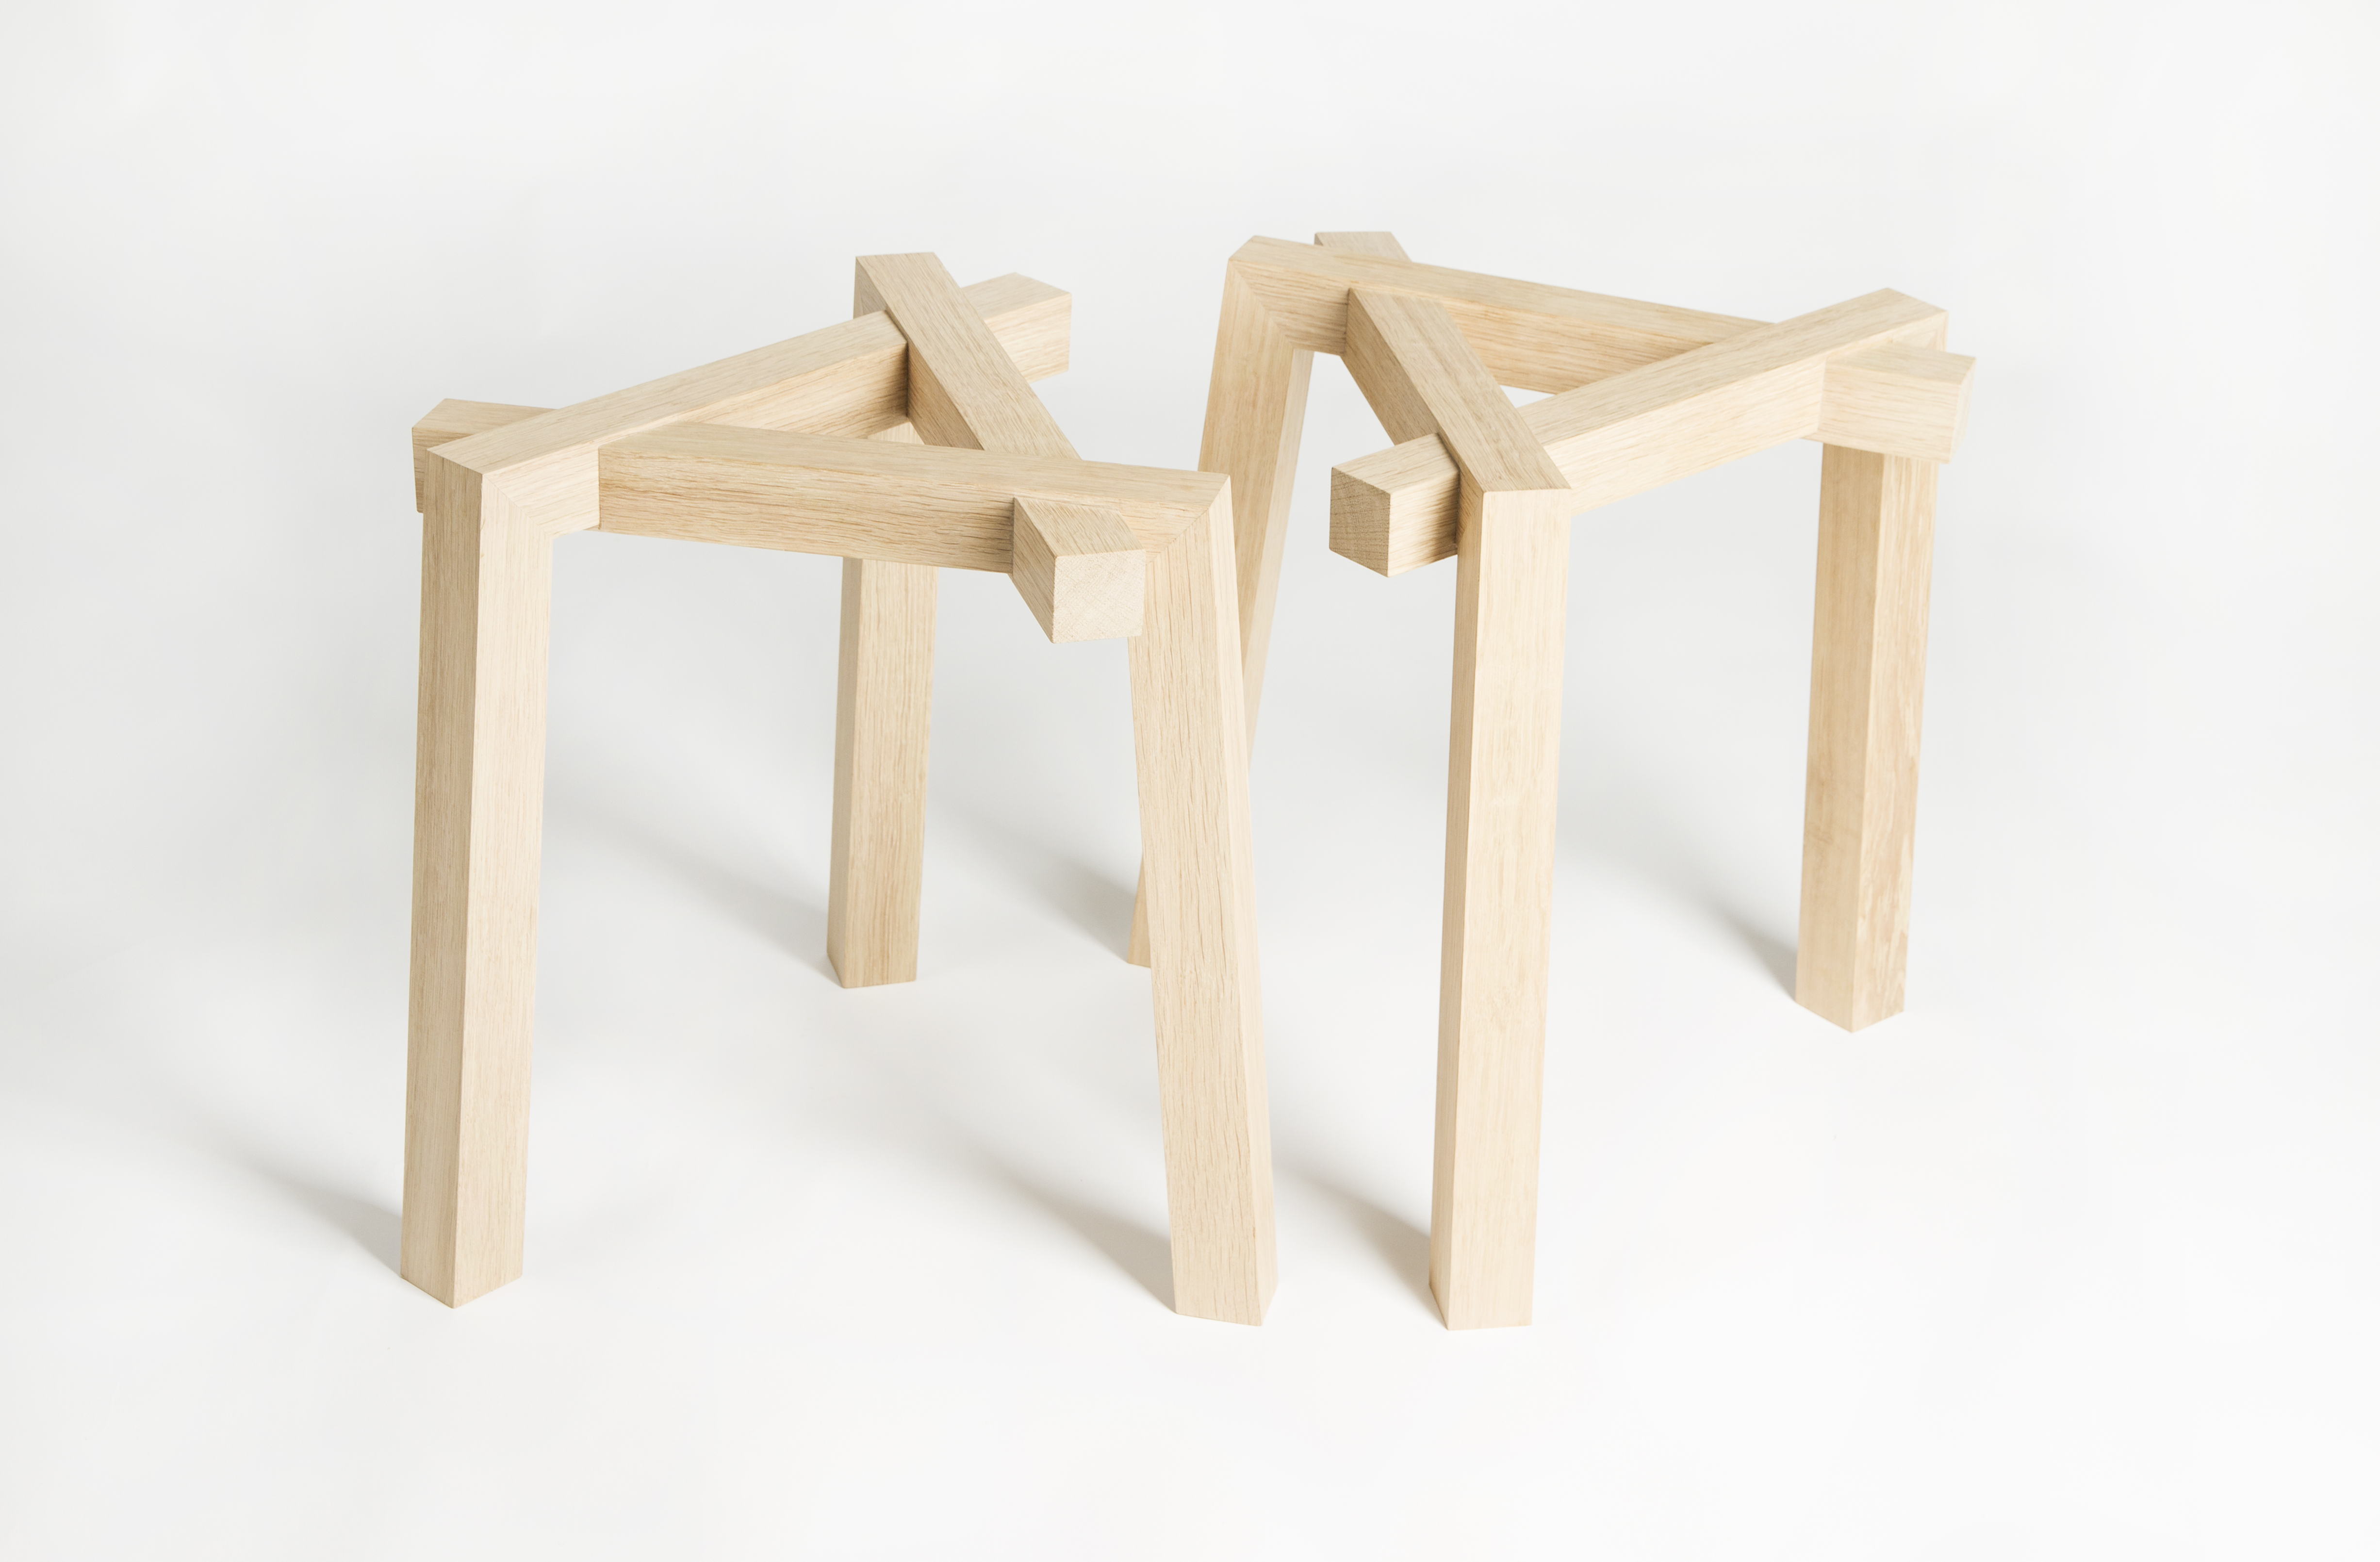 Trean-chairs by Tia Aitola and Antonia Sonntag